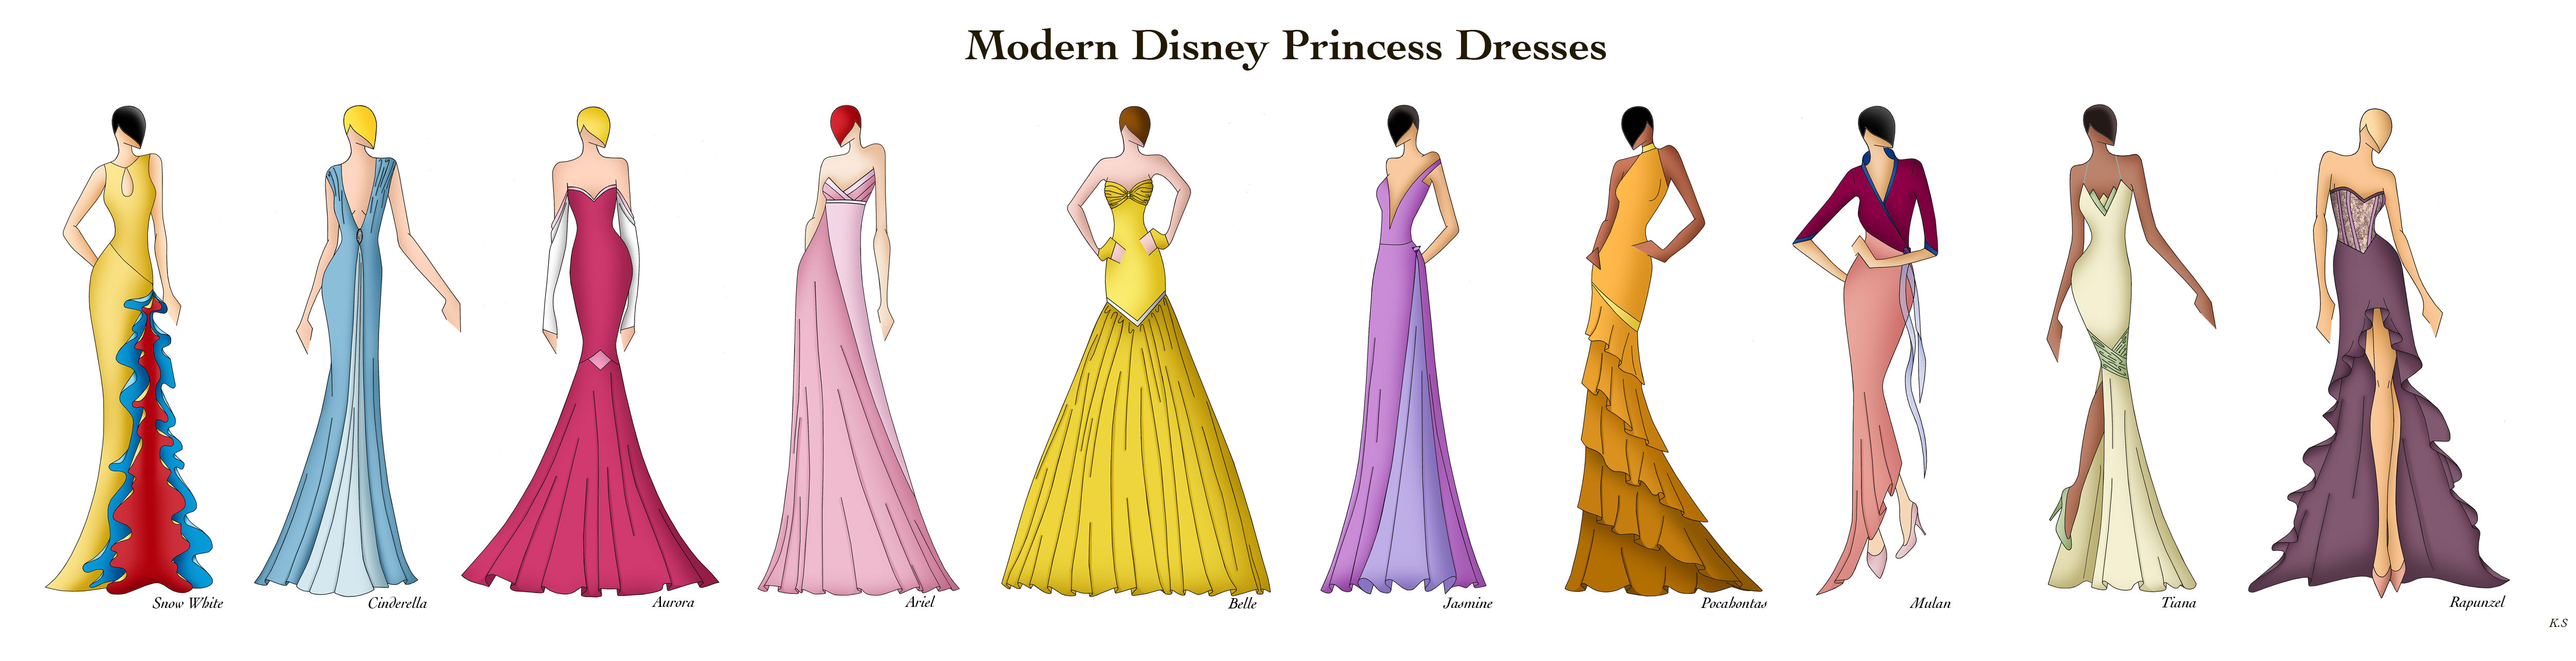 Modern Disney Princess Dresses by Ellevira